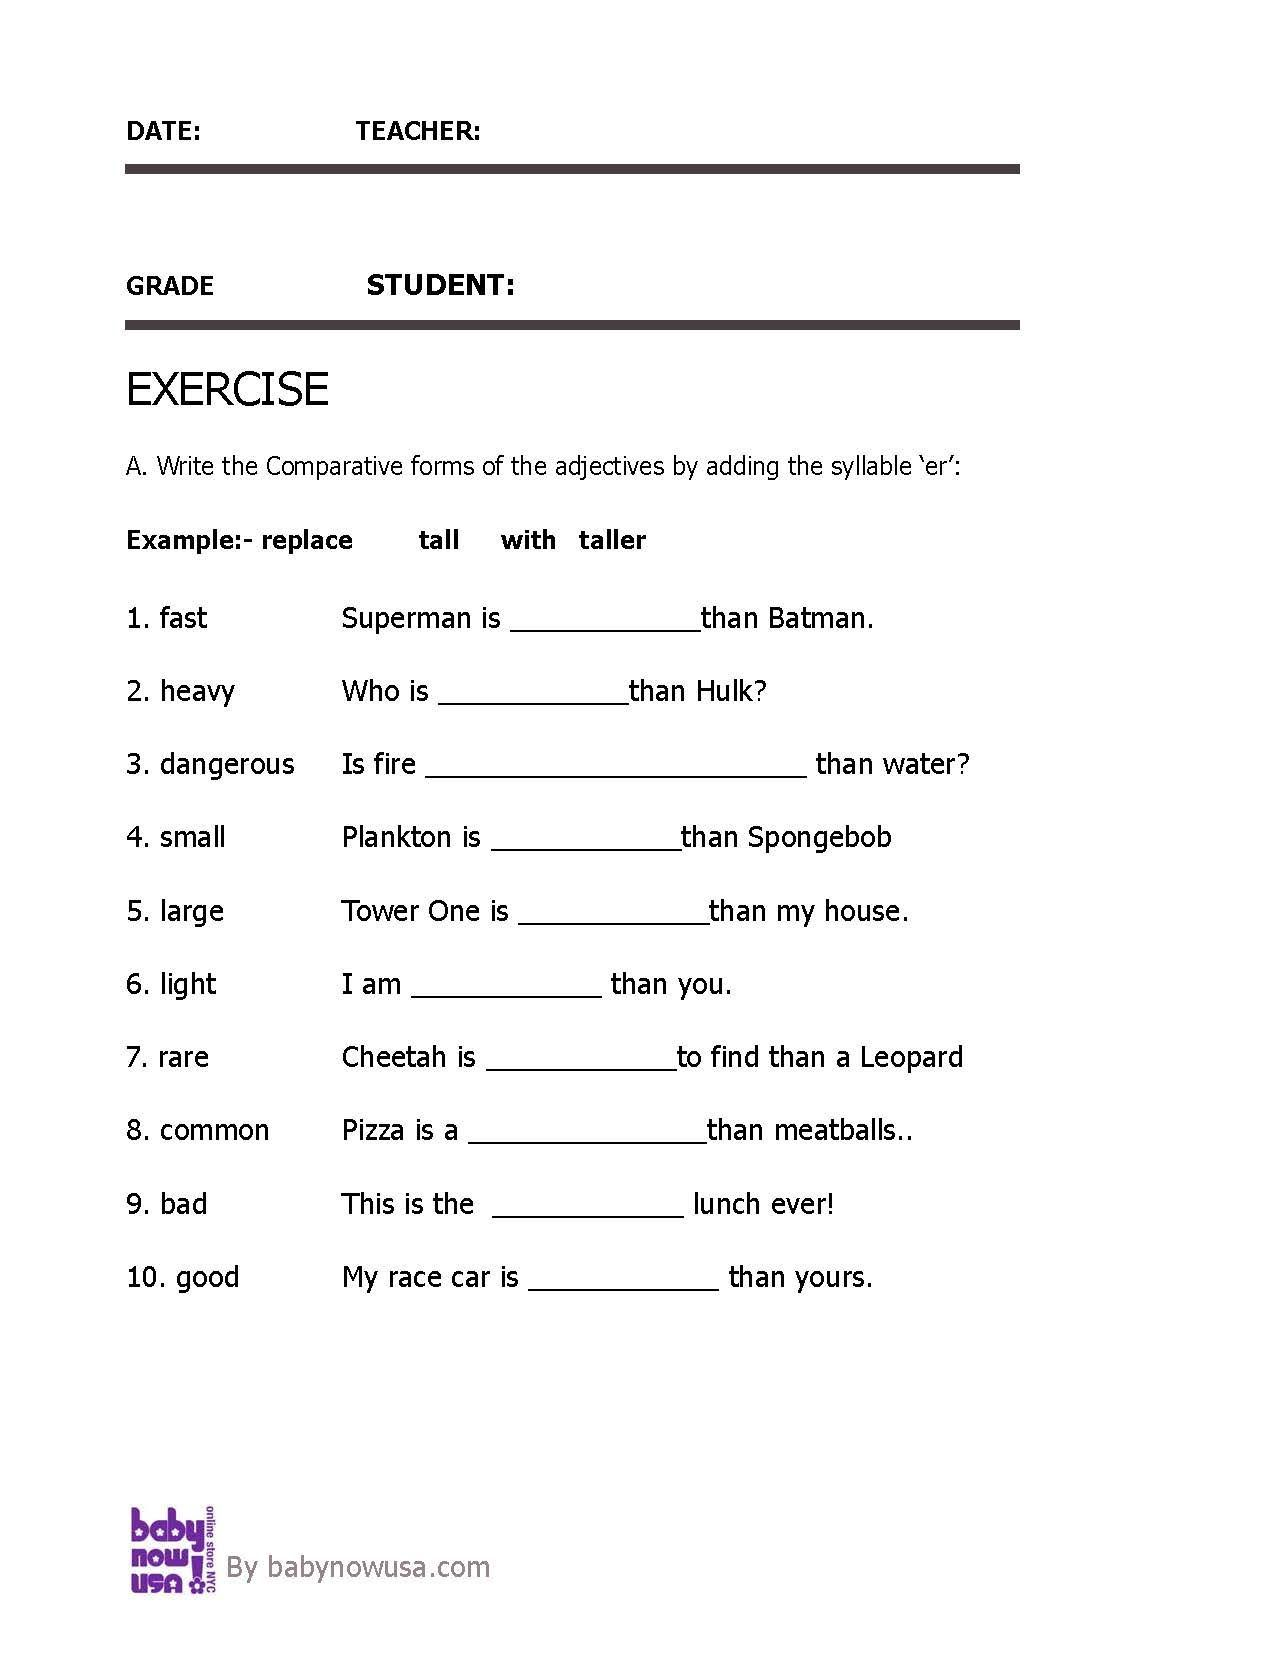 Worksheet Of Comparative Adjectives For Grade 2